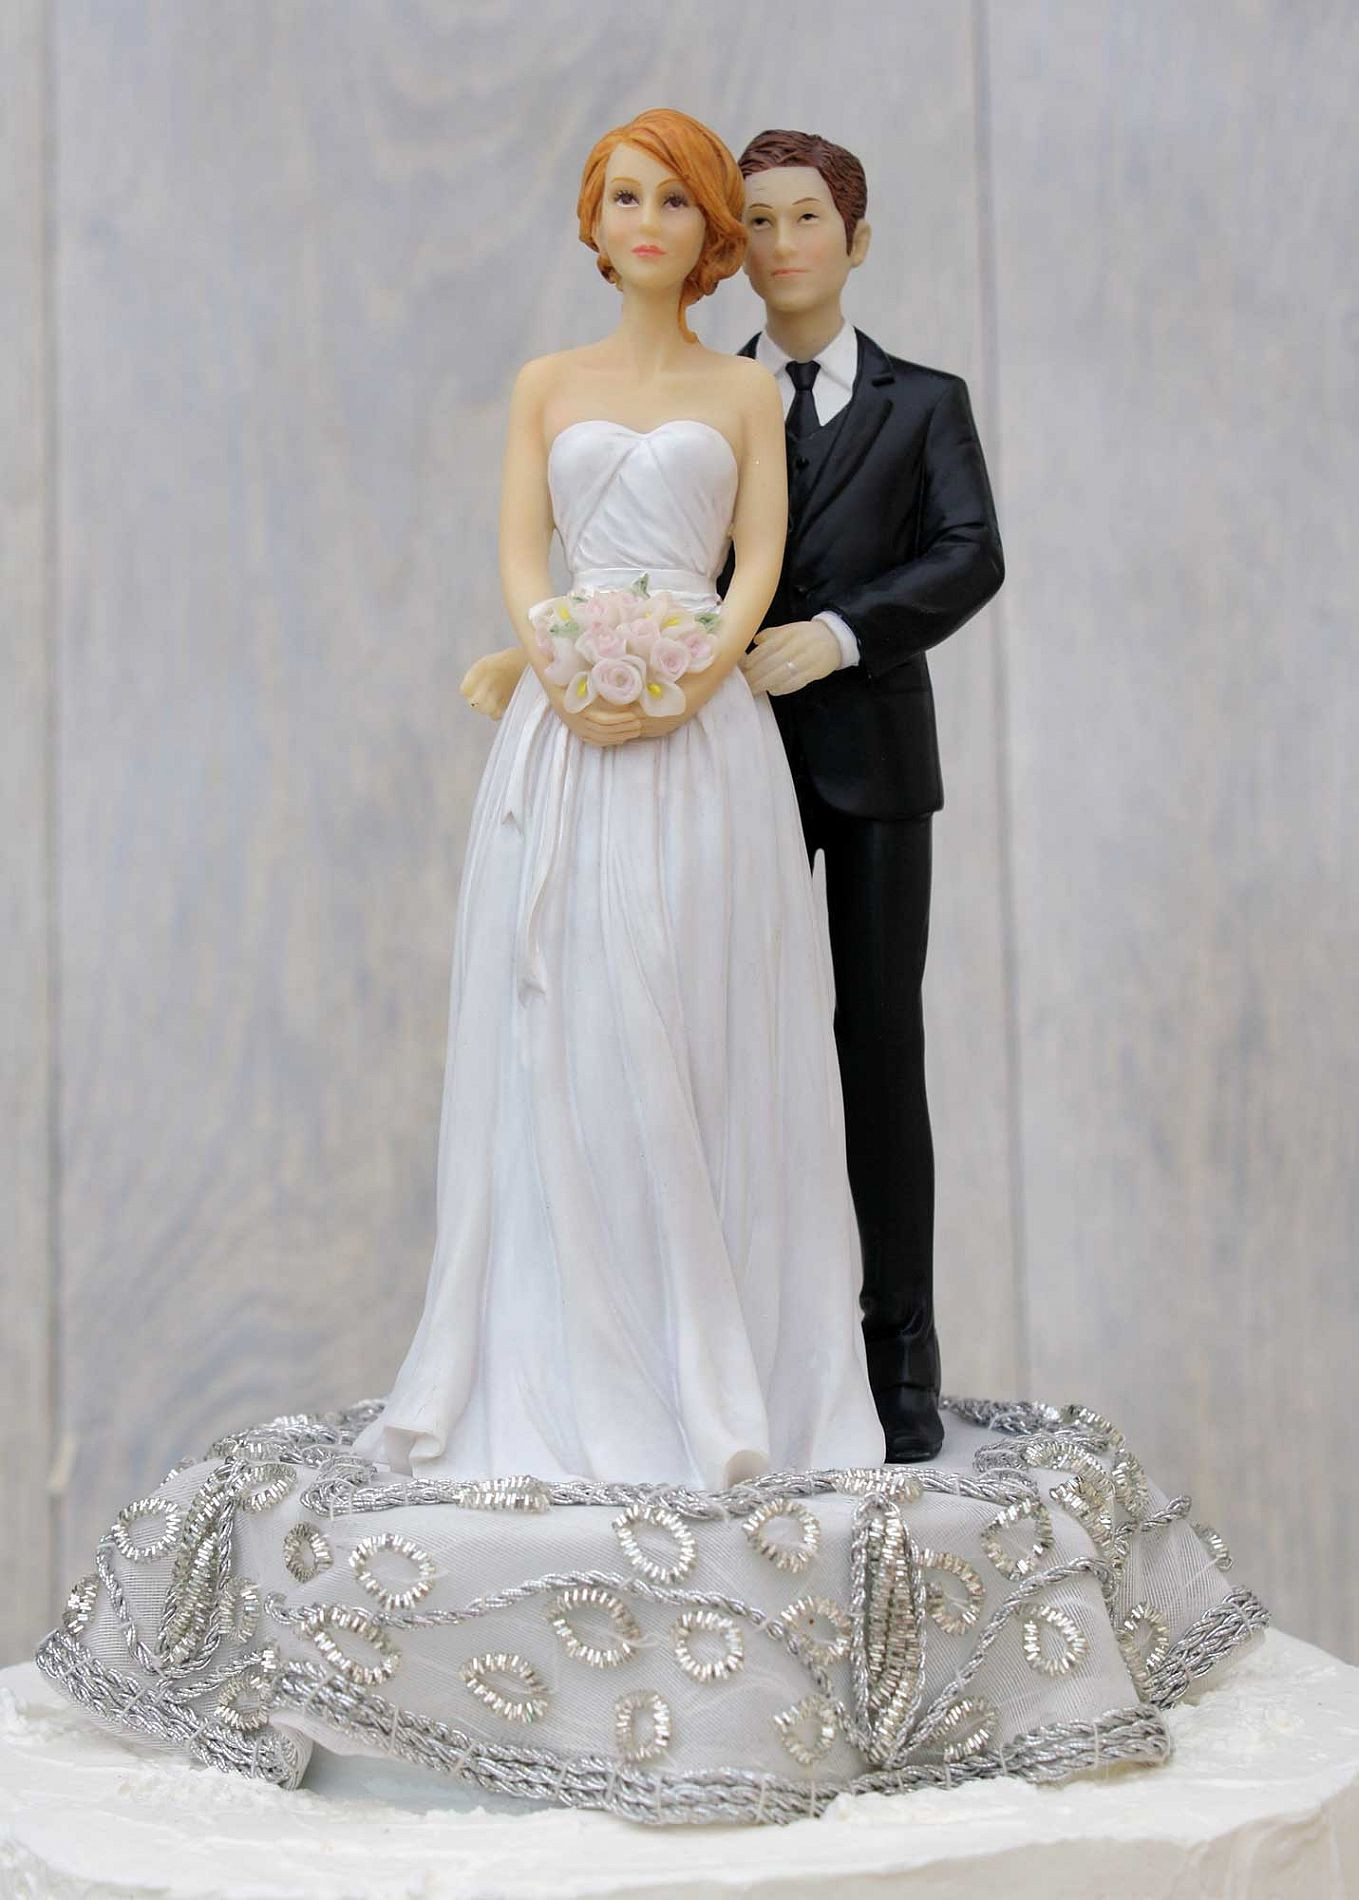 Bride And Groom Toppers For Wedding Cakes  Bride and groom wedding cake toppers idea in 2017